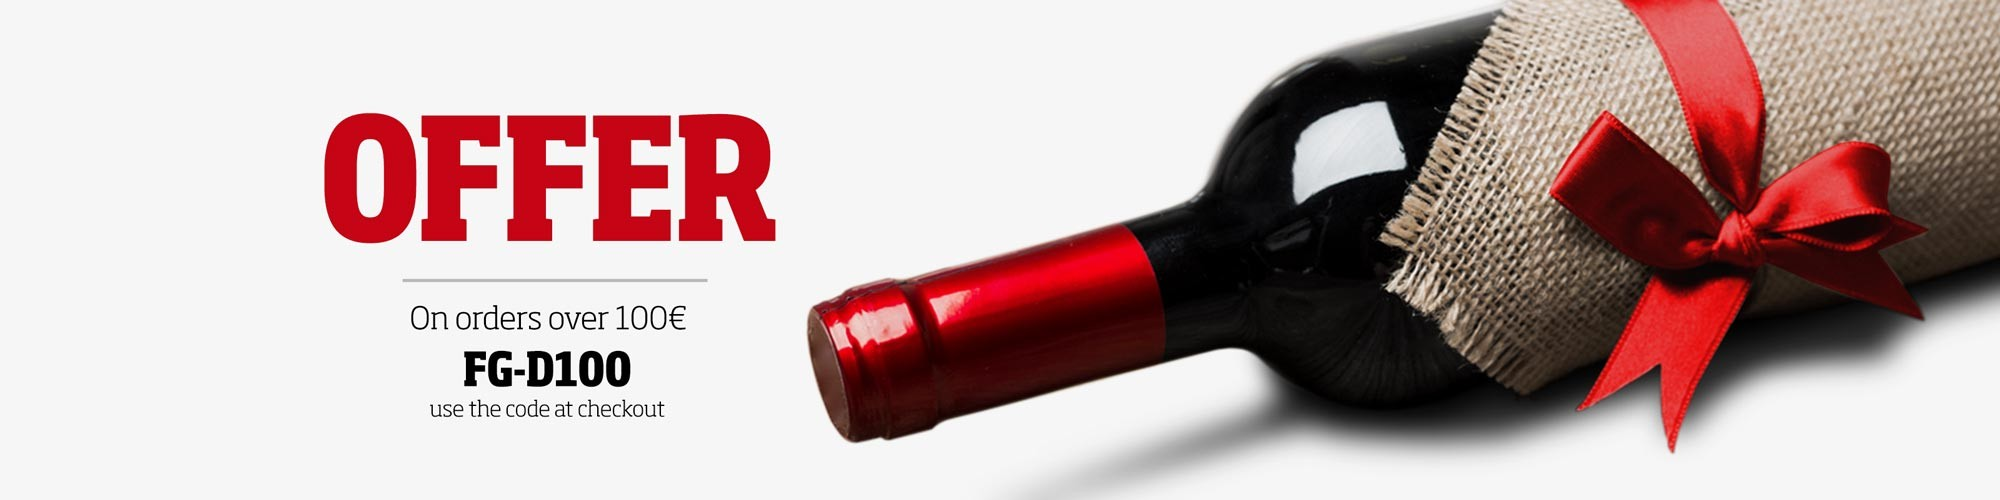 Offer of a bottle of French wine for purchases over €100. Don't miss this opportunity!